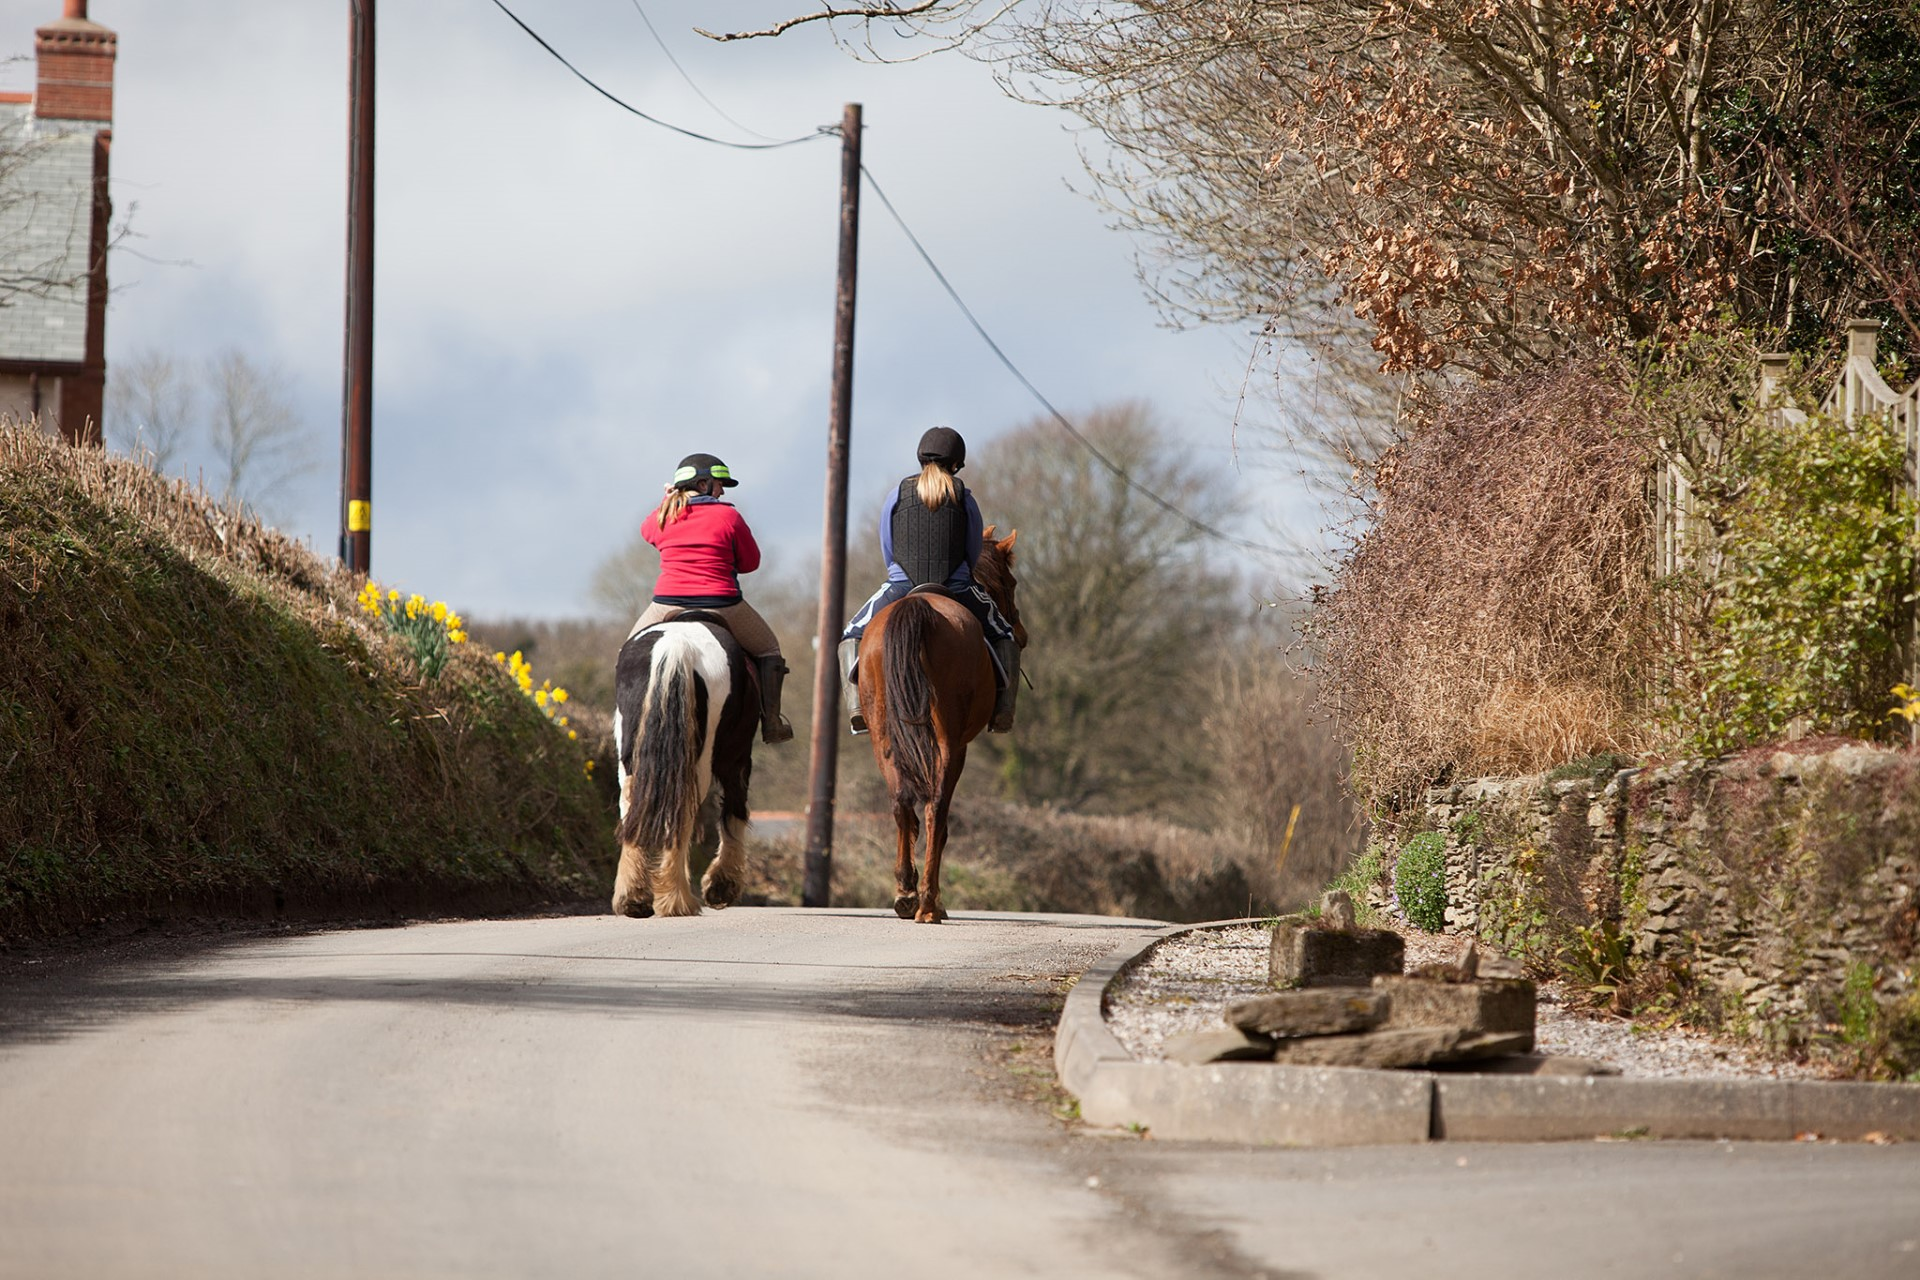 Horseriding on holiday in Kentisbury, quiet countryside location close to Exmoor and coast